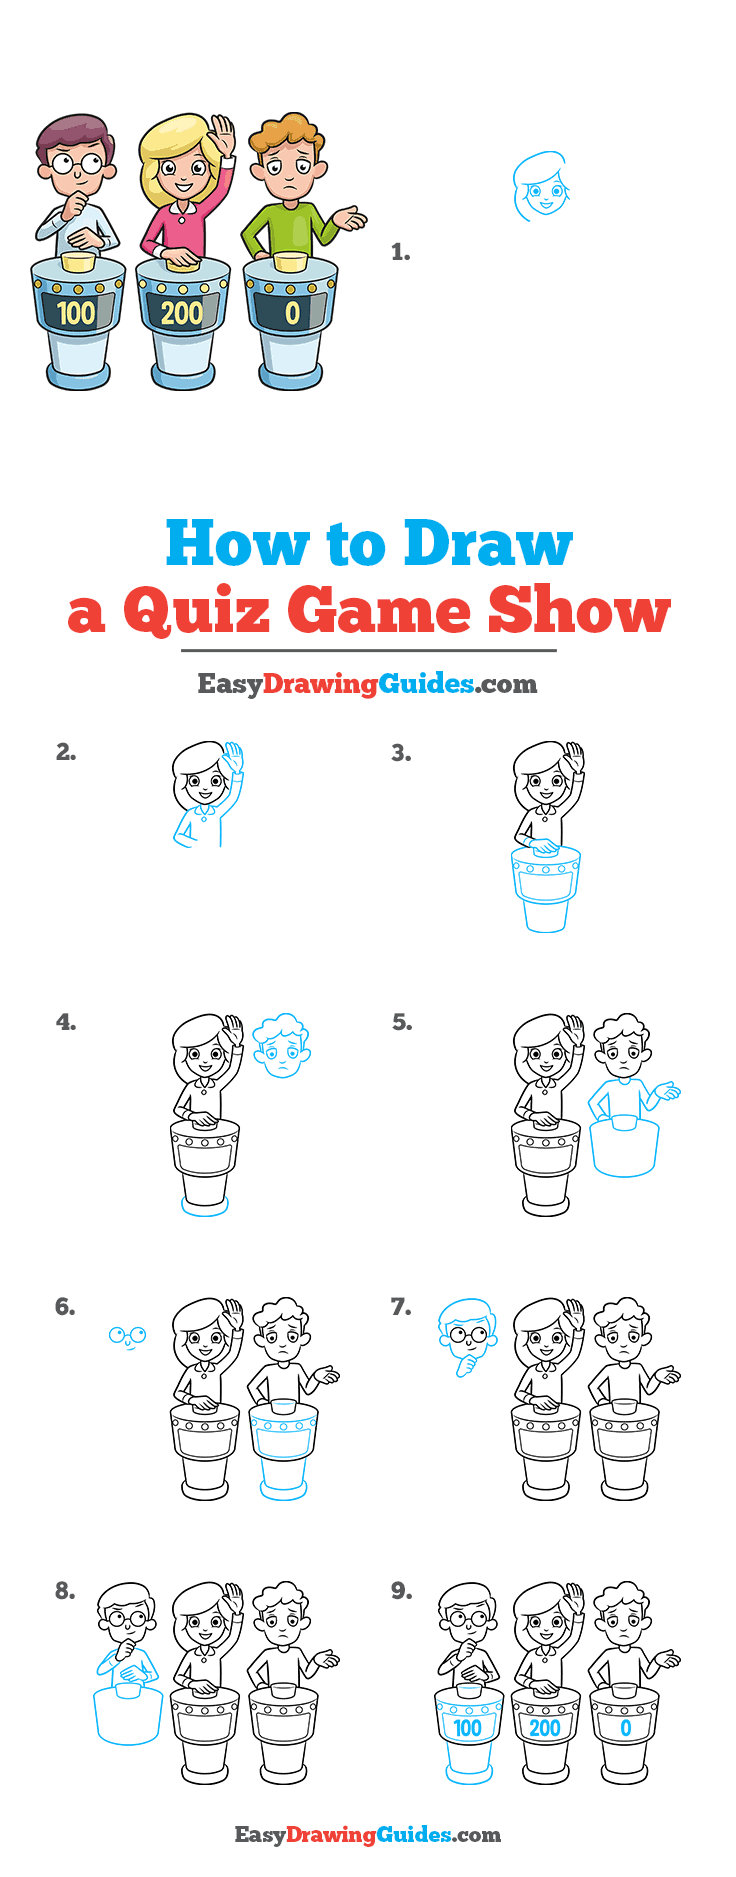 How to Draw a Quiz Game Show Step by Step Tutorial Image